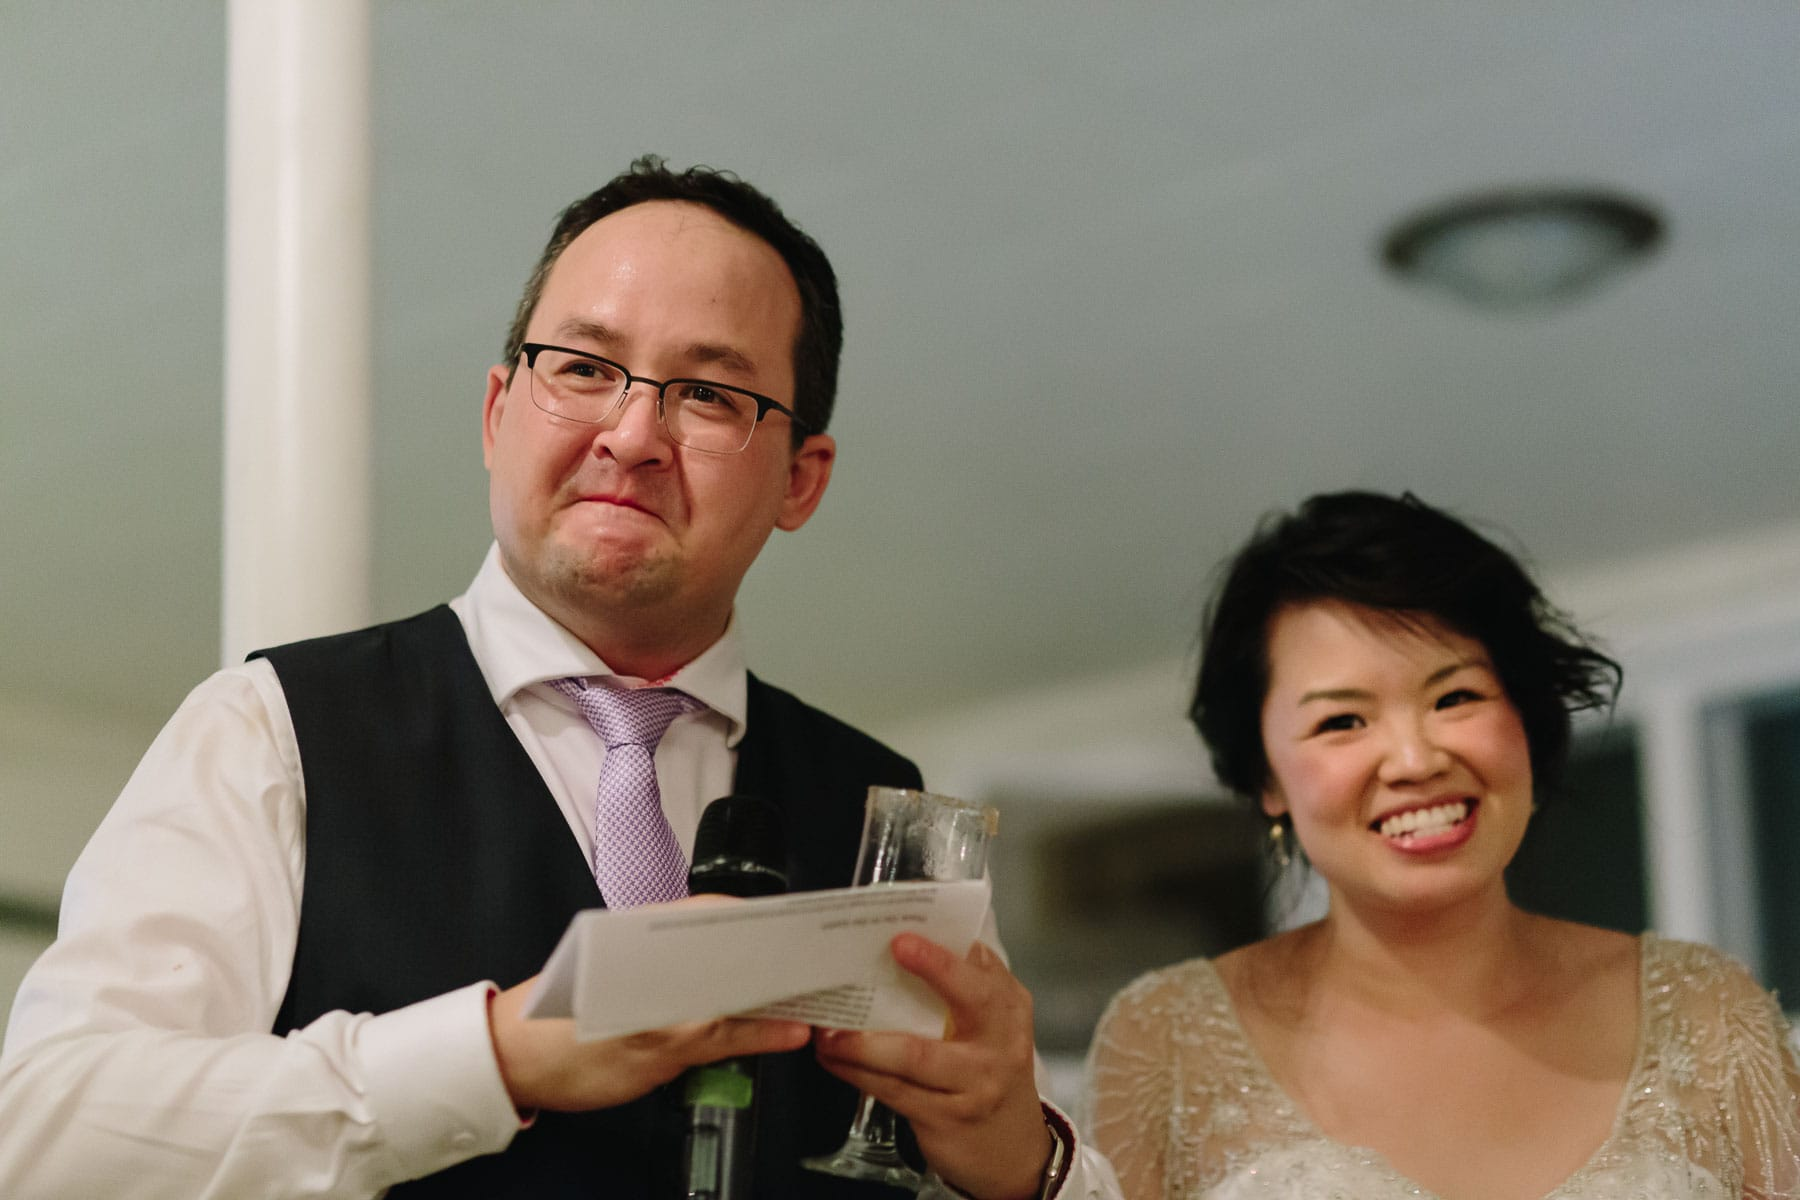 Bride and groom speech, Artscape, Gibraltar Point, Toronto Island wedding